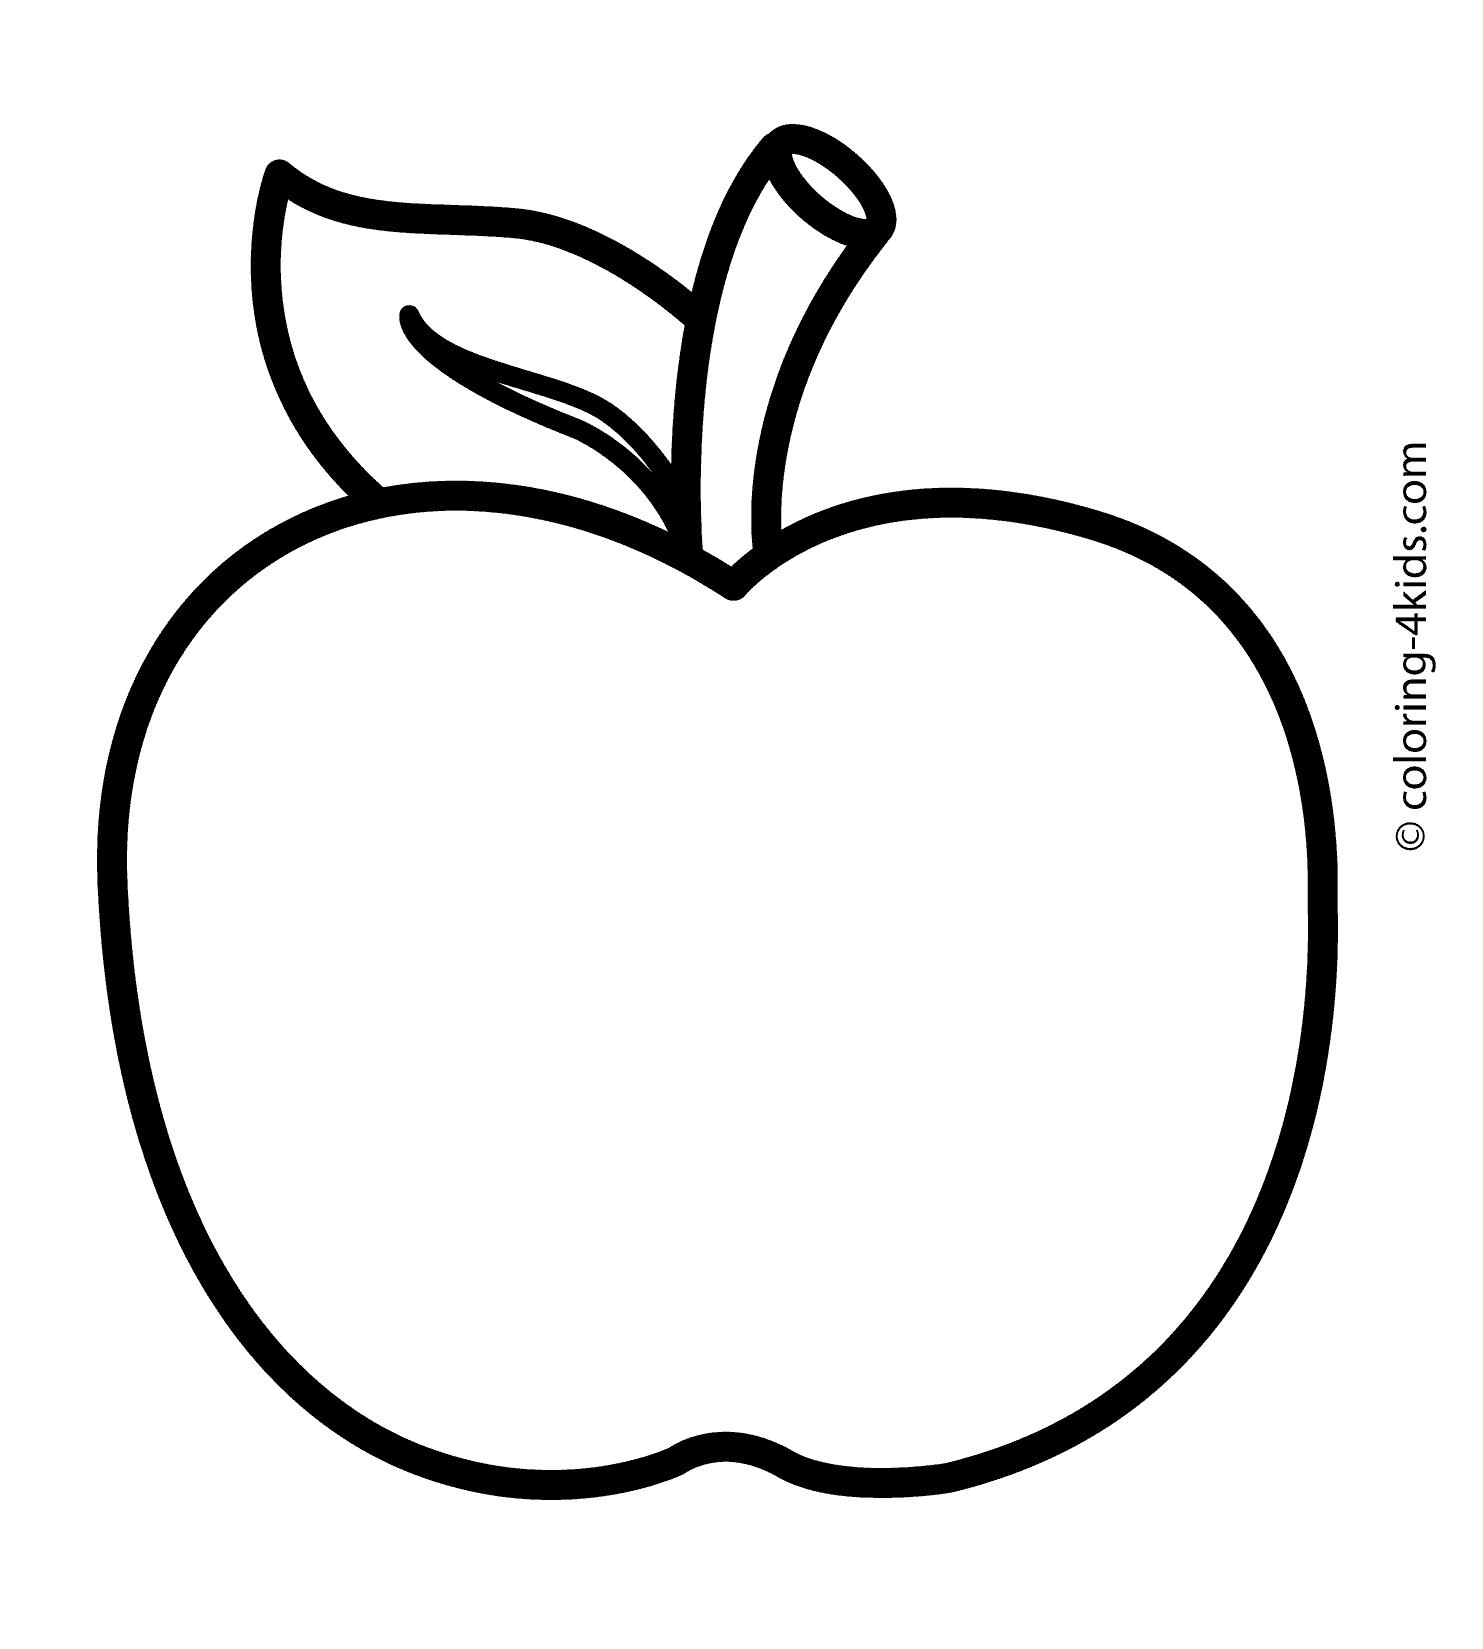 apple coloring picture free printable apple coloring pages for kids picture coloring apple